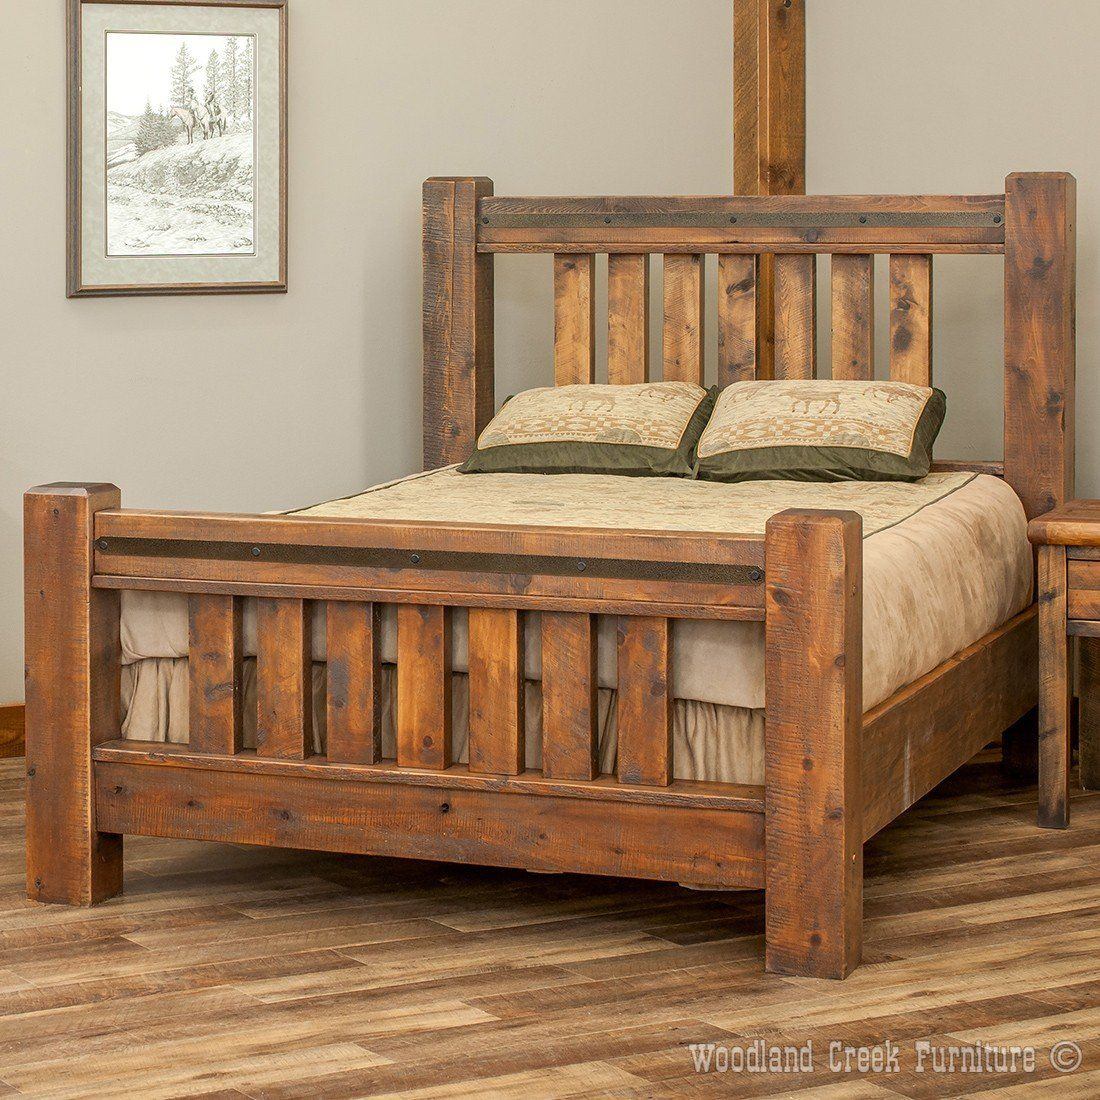 Sawmill Spindle Rough Sawn Timber Bed  Rustic bed frame, Rustic